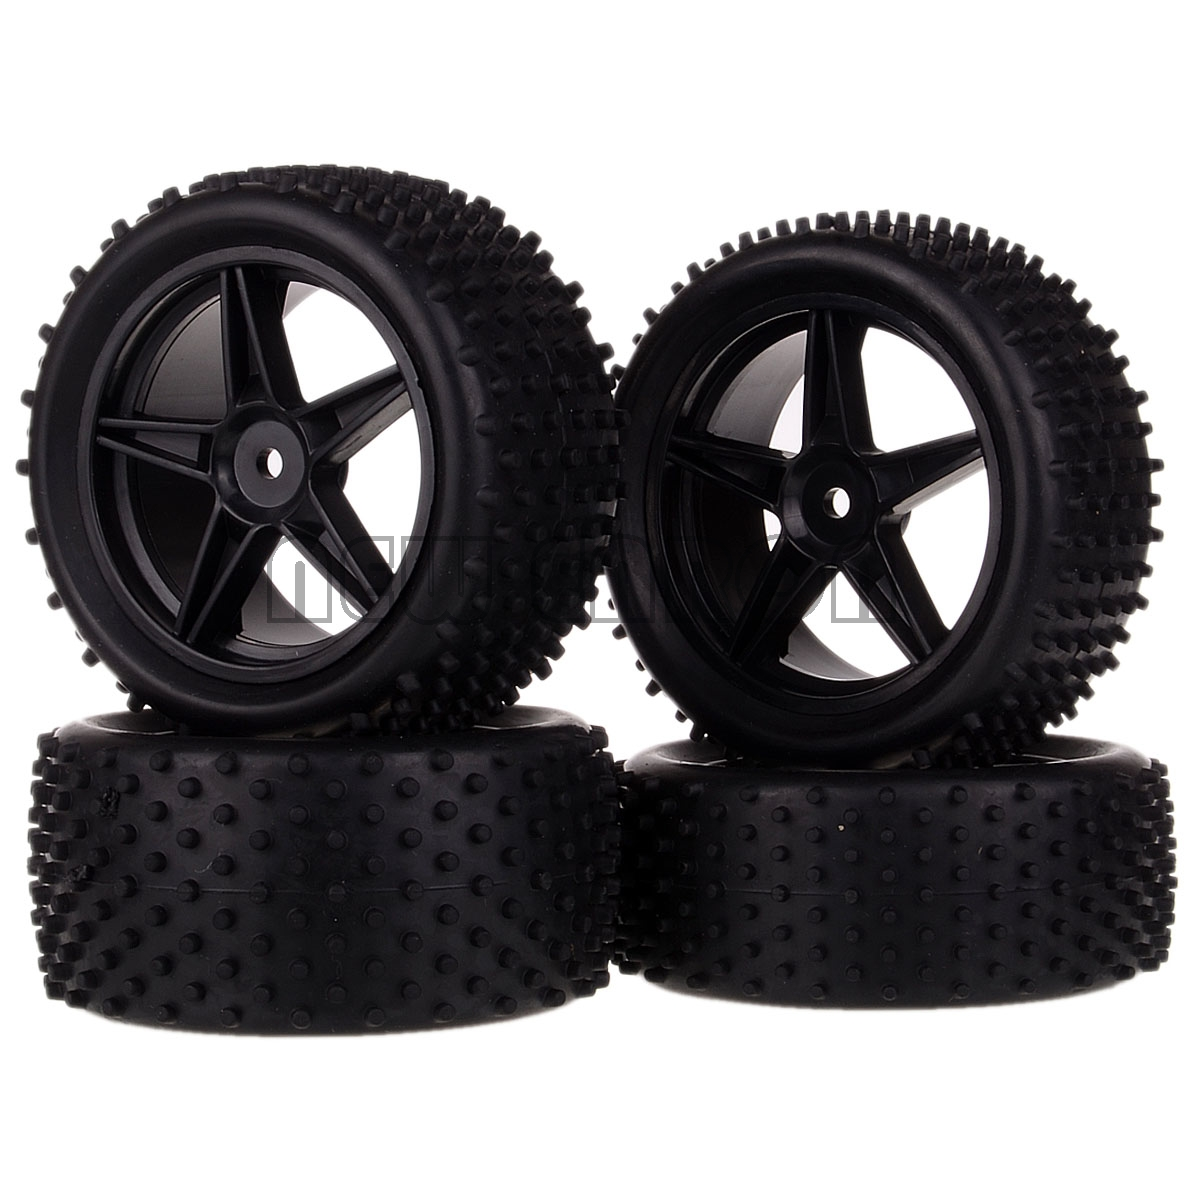 NEW ENRON  4PCS Front+Rear Wheel Rim Tire Tyre 06010 06026 For RC 1/10 Off Road Buggy HSP 94107 RedCat